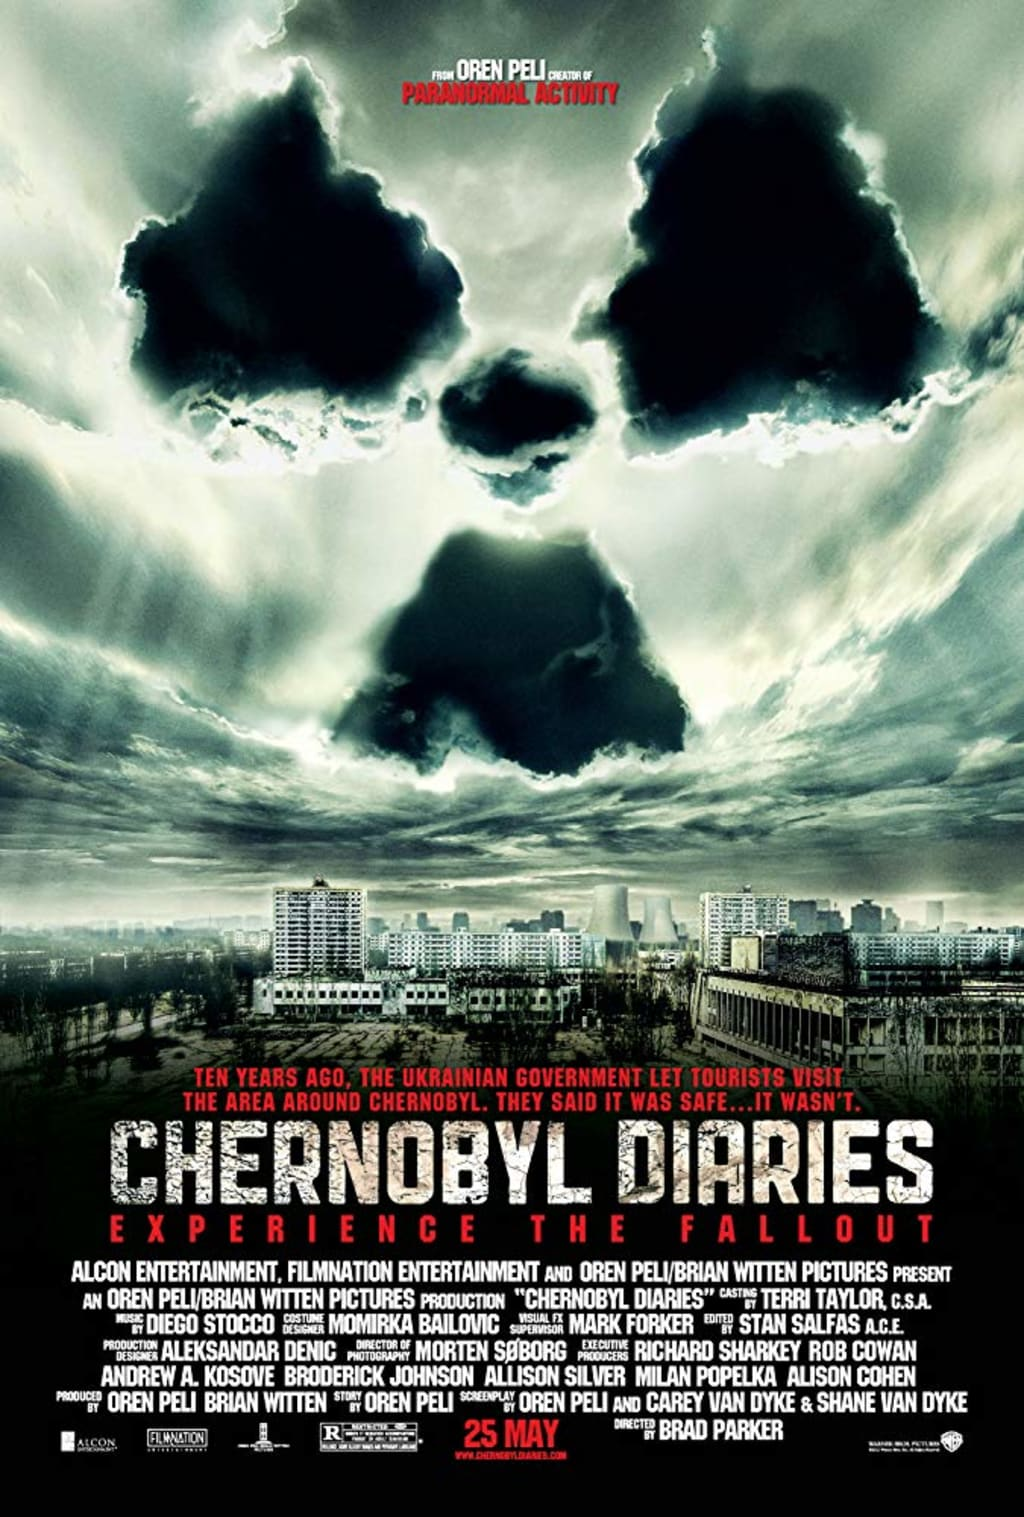 Reed Alexander's Horror Review of 'Chernobyl Diaries' (2012)